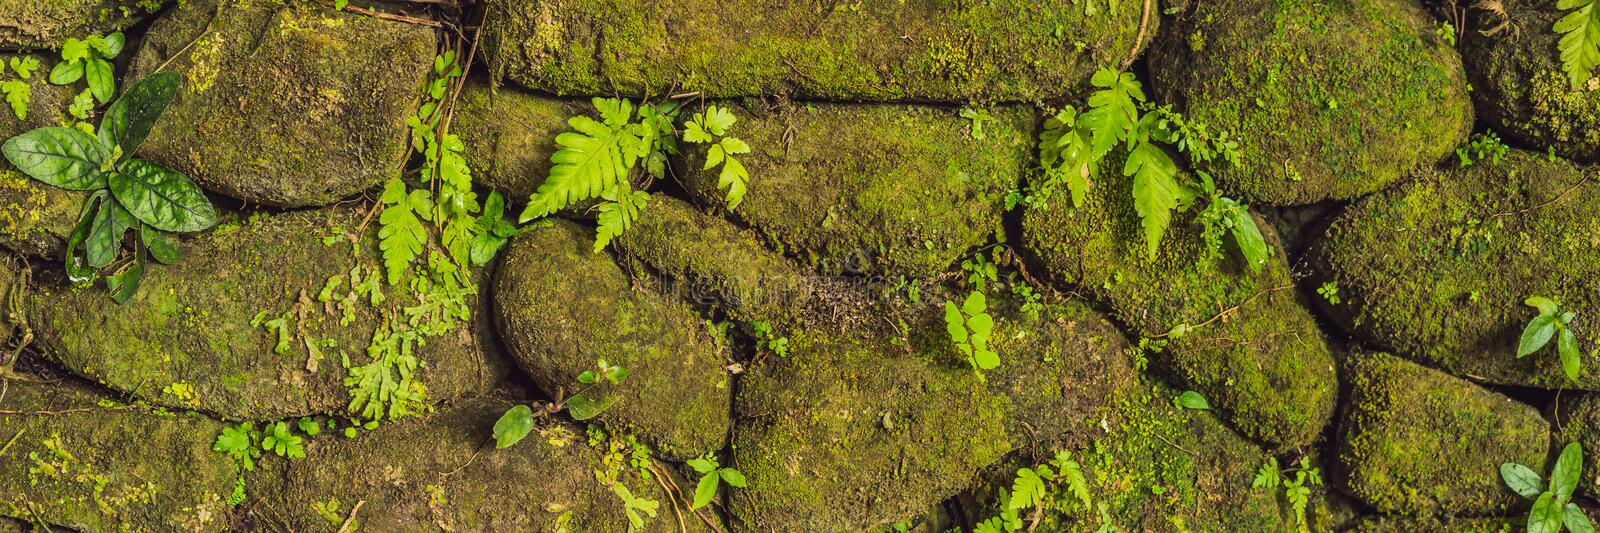 Texture of old stone wall covered green moss in Fort Rotterdam, Makassar - Indonesia BANNER, long format. Texture of old stone wall covered green moss in Fort stock photo